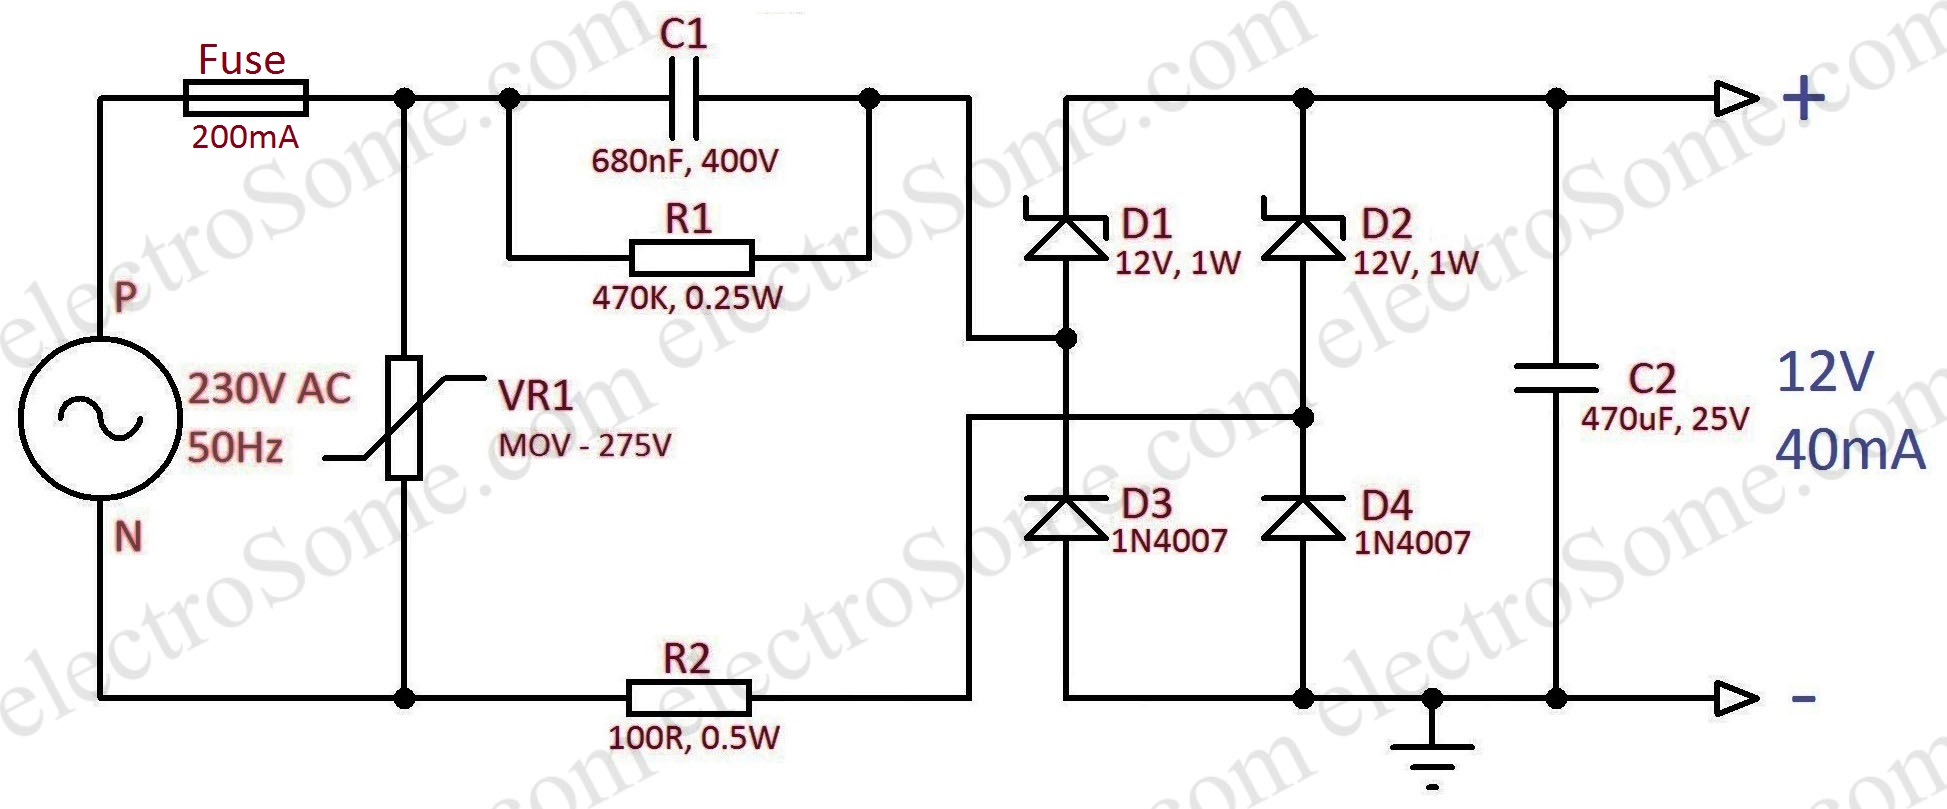 Voltage Transformer Diagram together with Ac System Schematic likewise Battery Diagram In Circuit in addition Class A  lifier 8w besides Fire Alarm Using Ne555 And Temperature. on timer symbol schematic